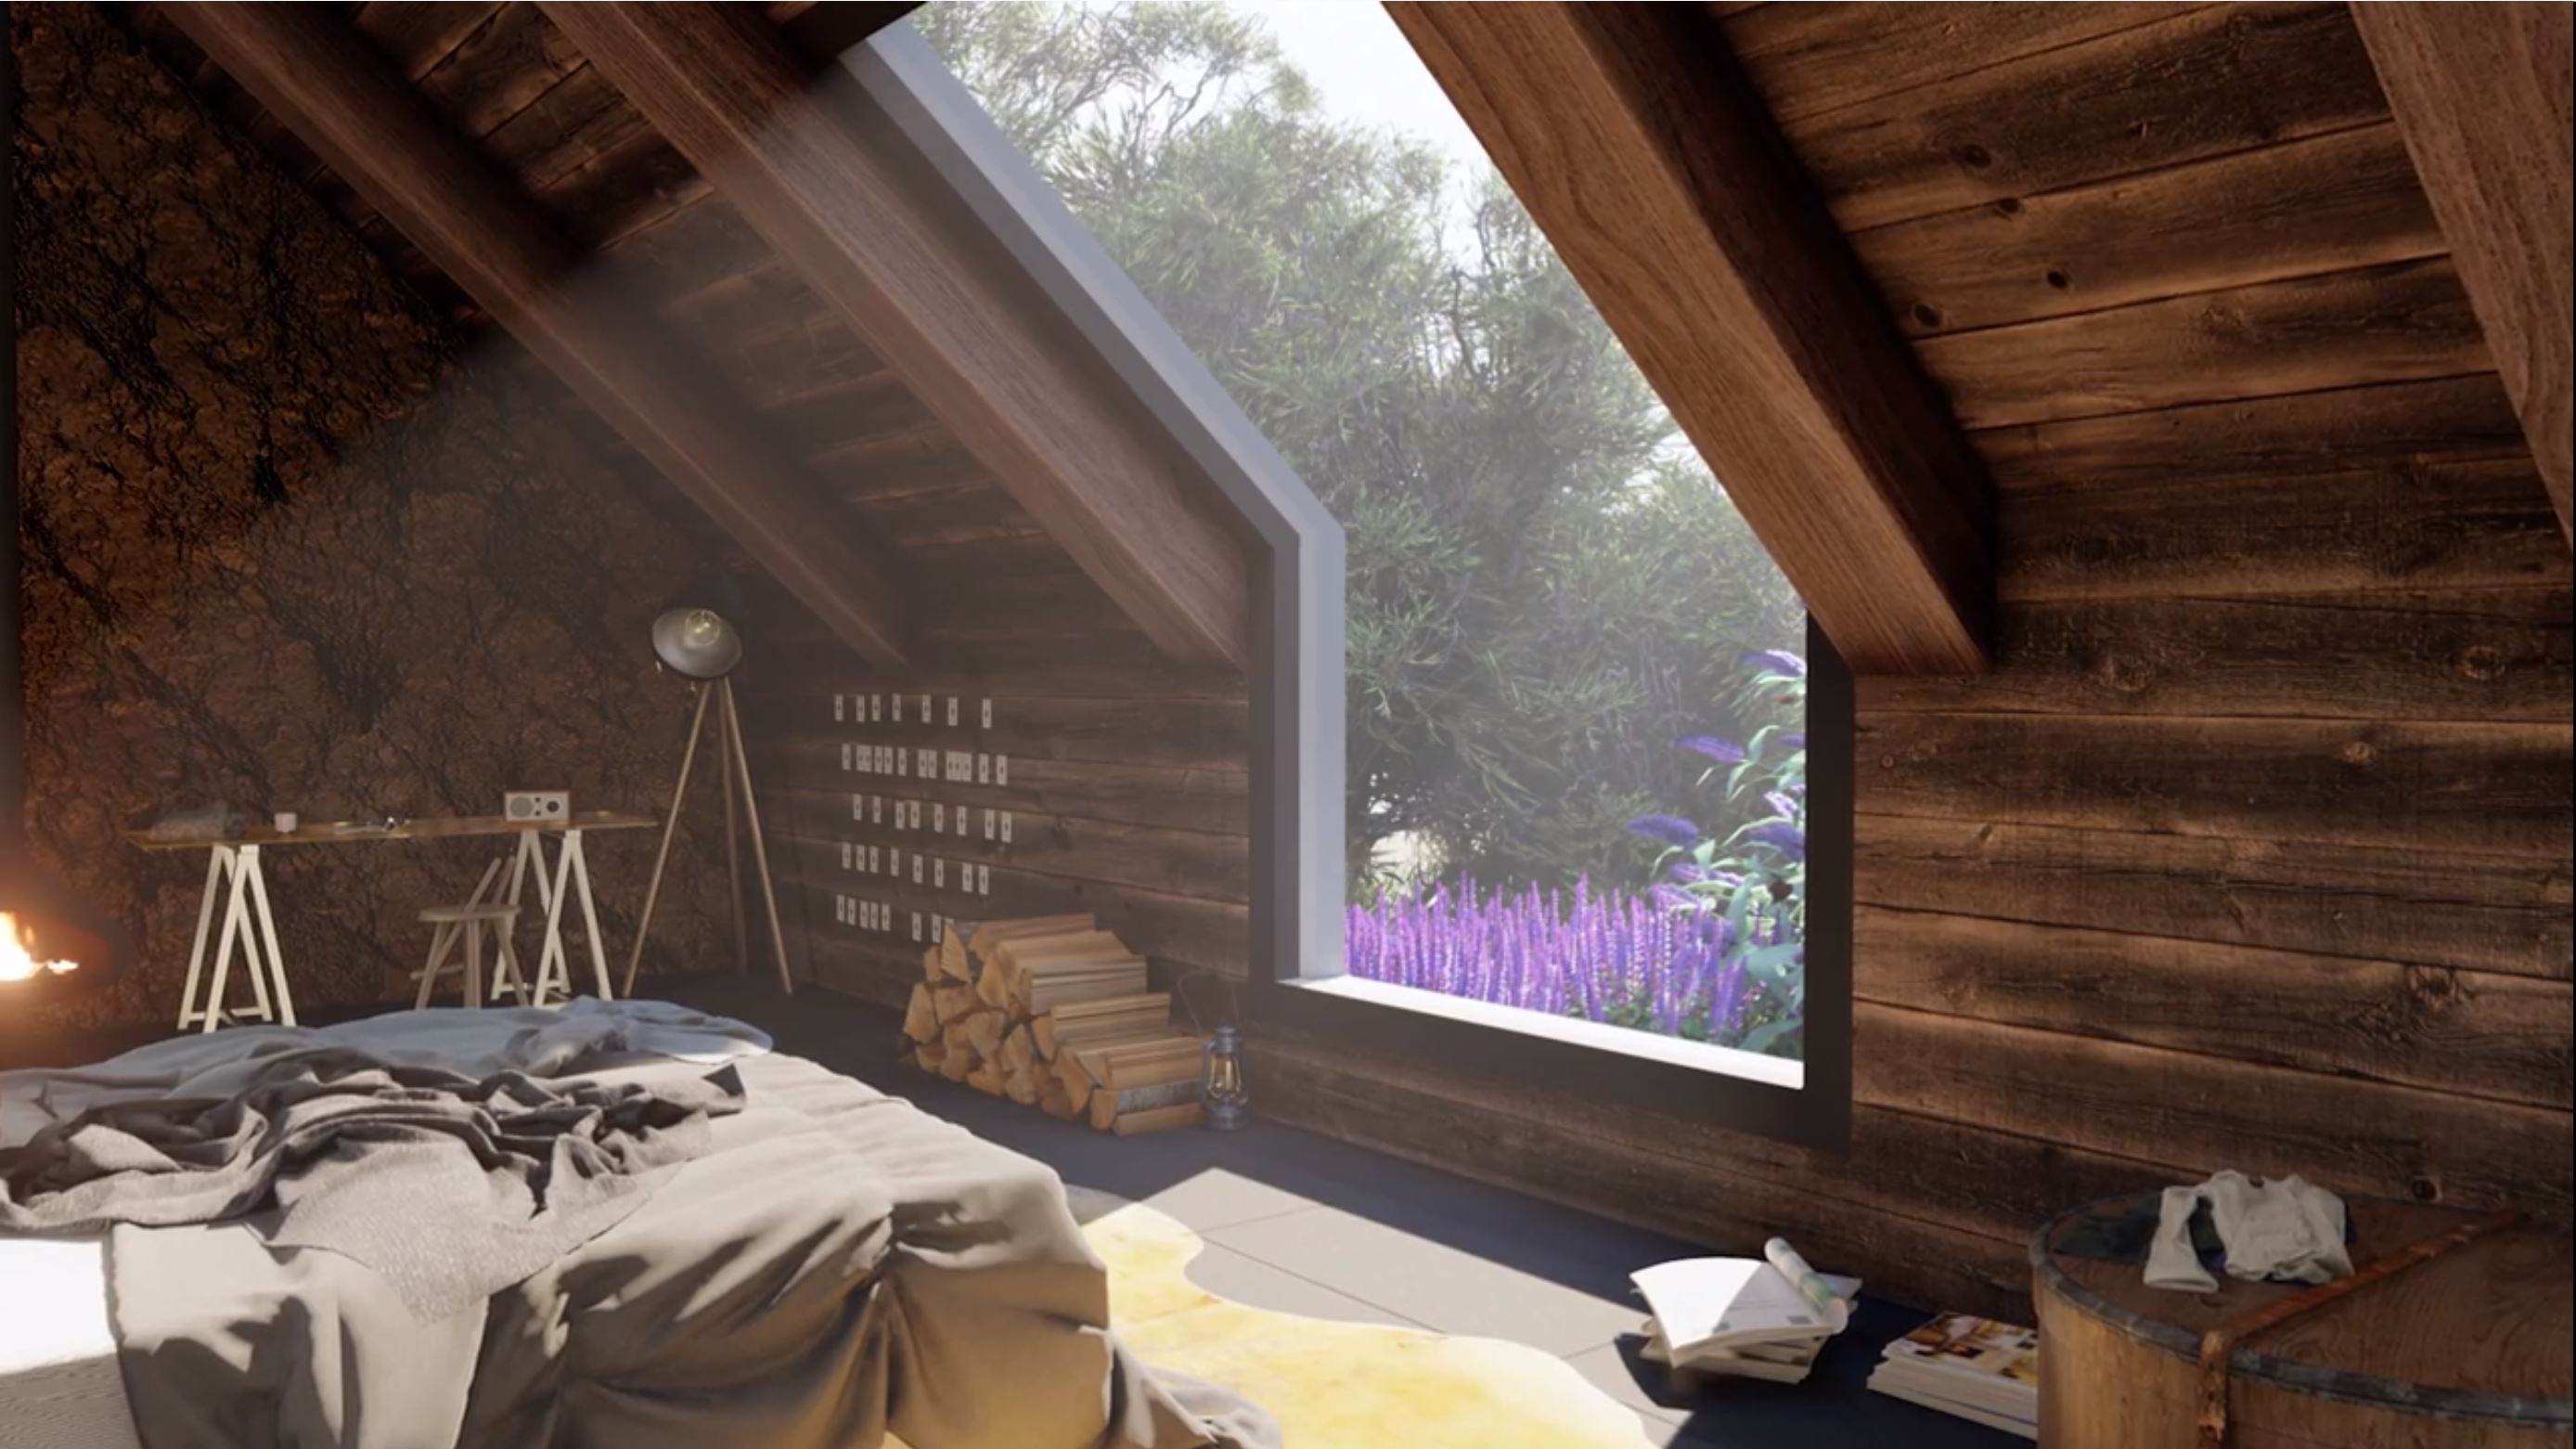 final rendering for interior Sketchup cozy attic bedroom model